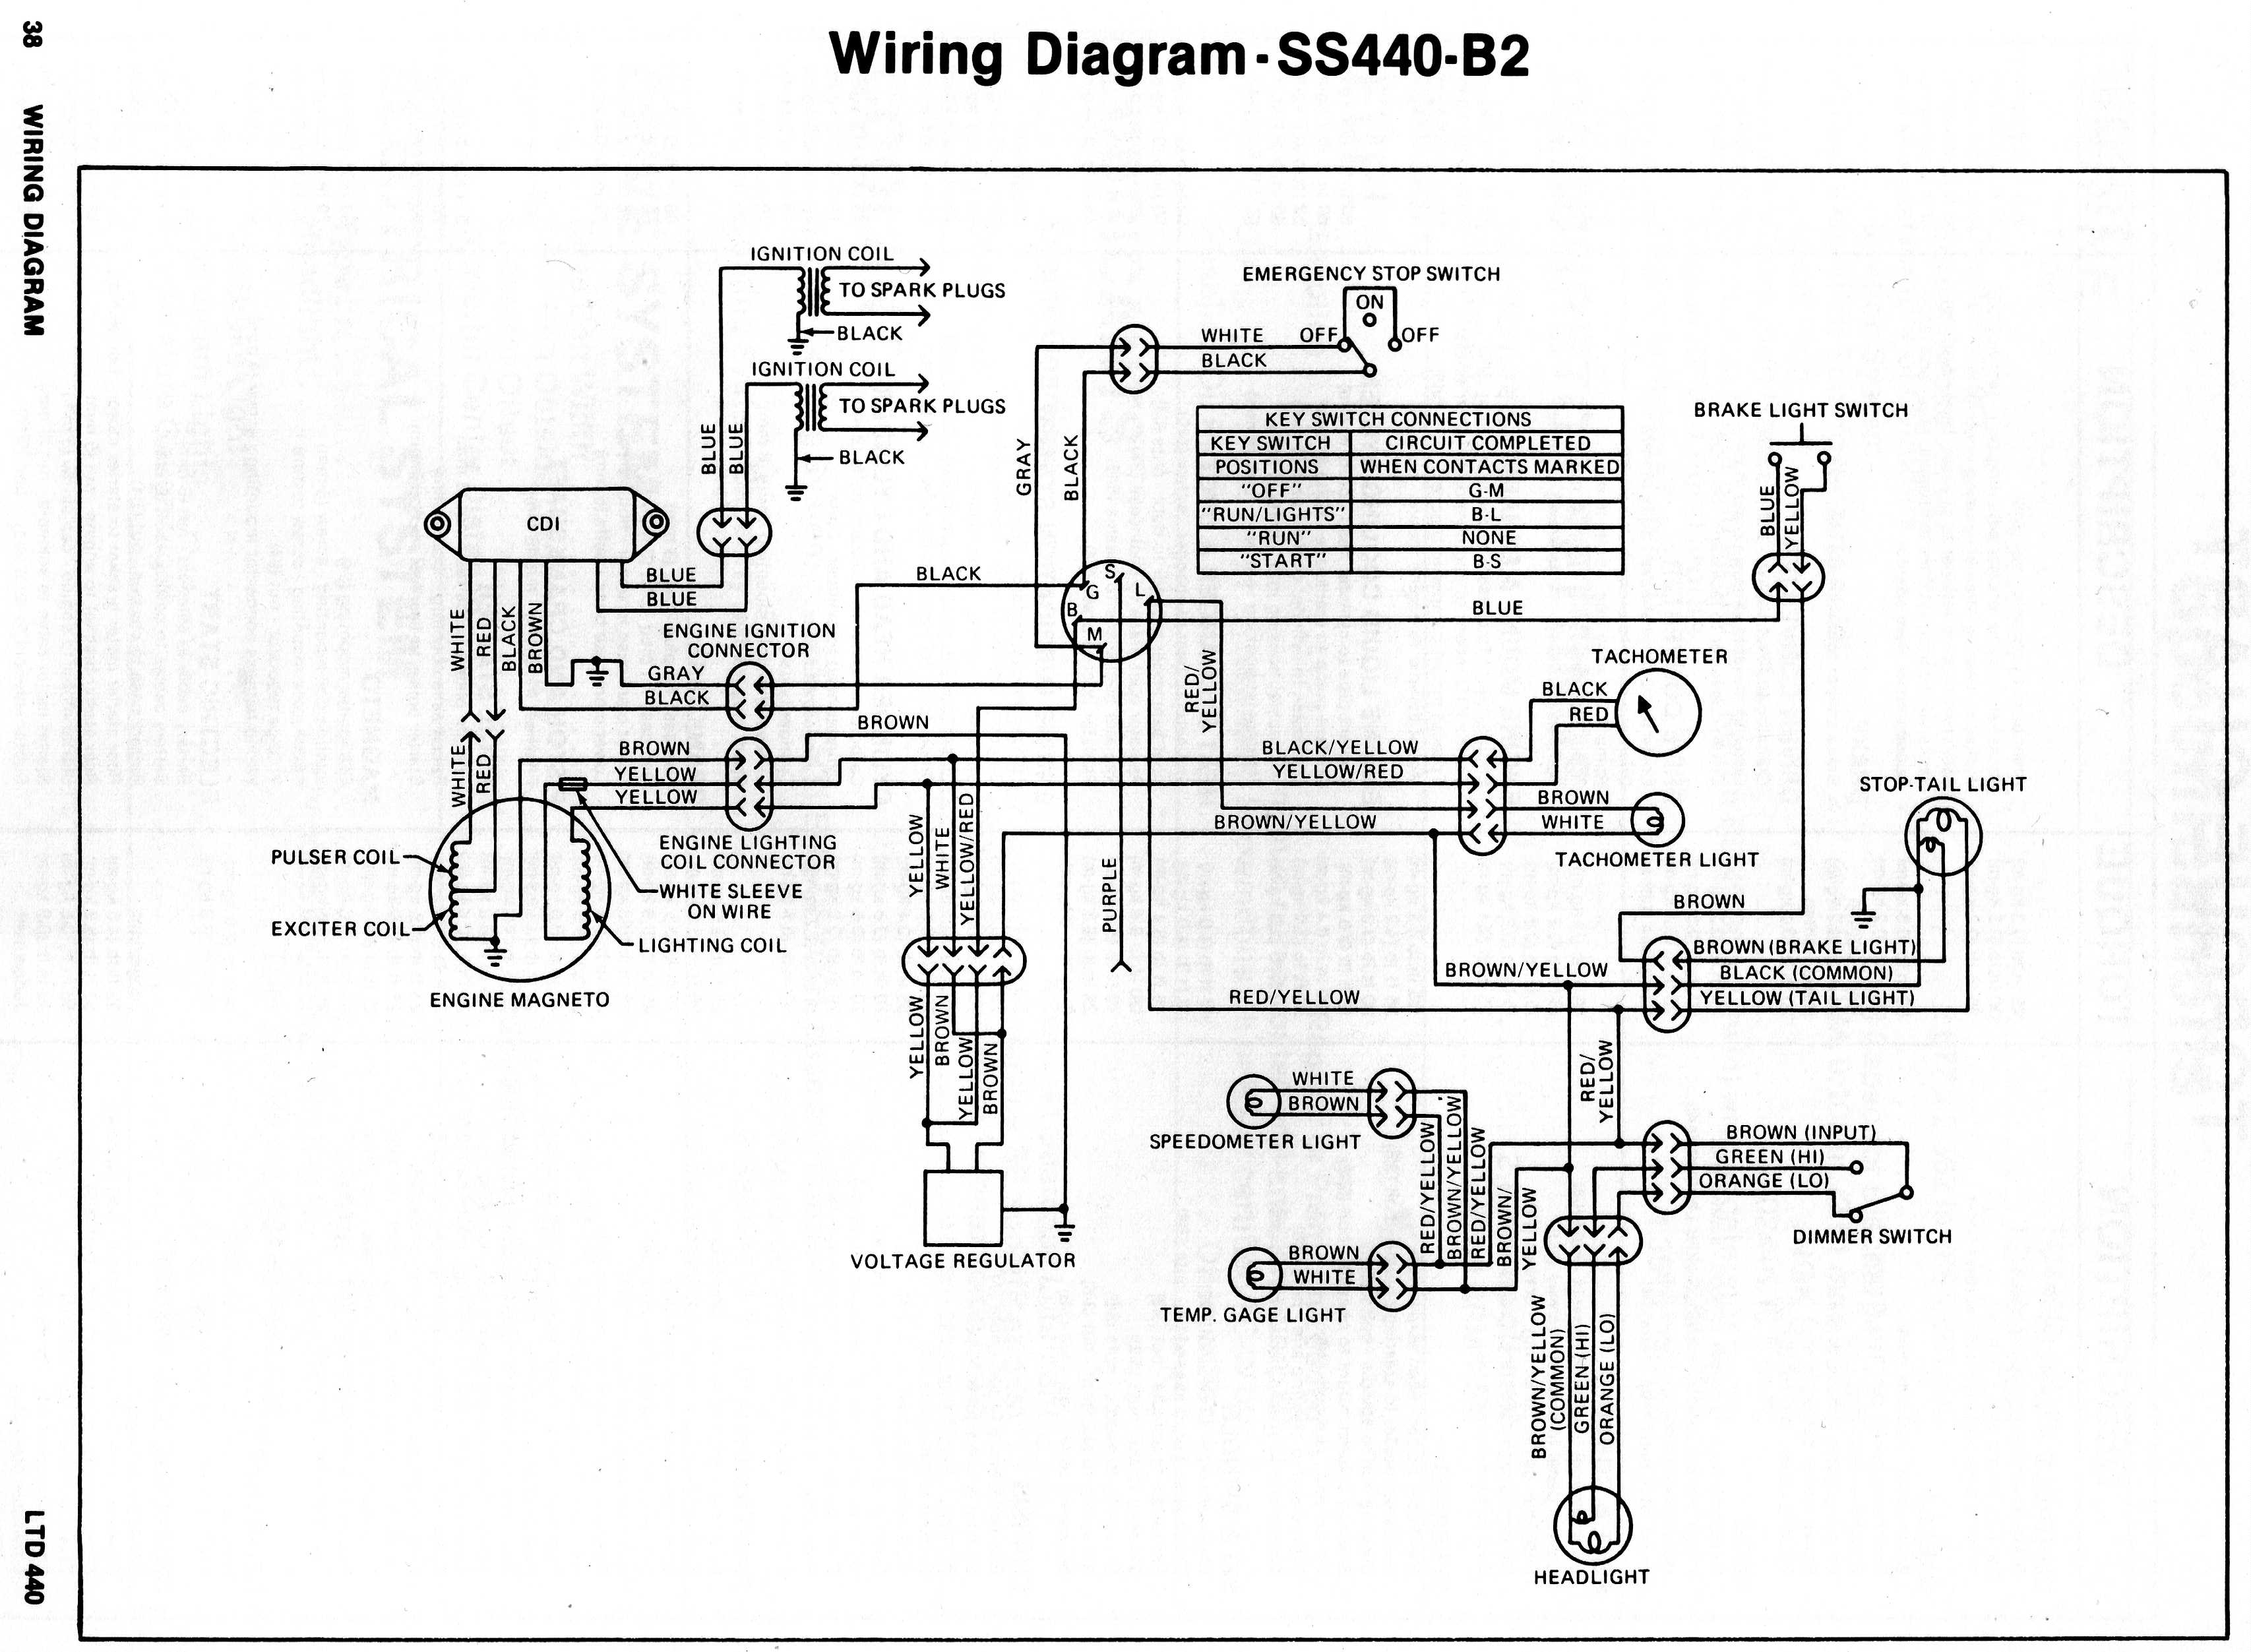 Kawasaki Engine Wiring Diagrams Another Blog About Diagram 1996 Toyota Camry Pdf Invader Snowmobile Rh Kawisncats Freevar Com